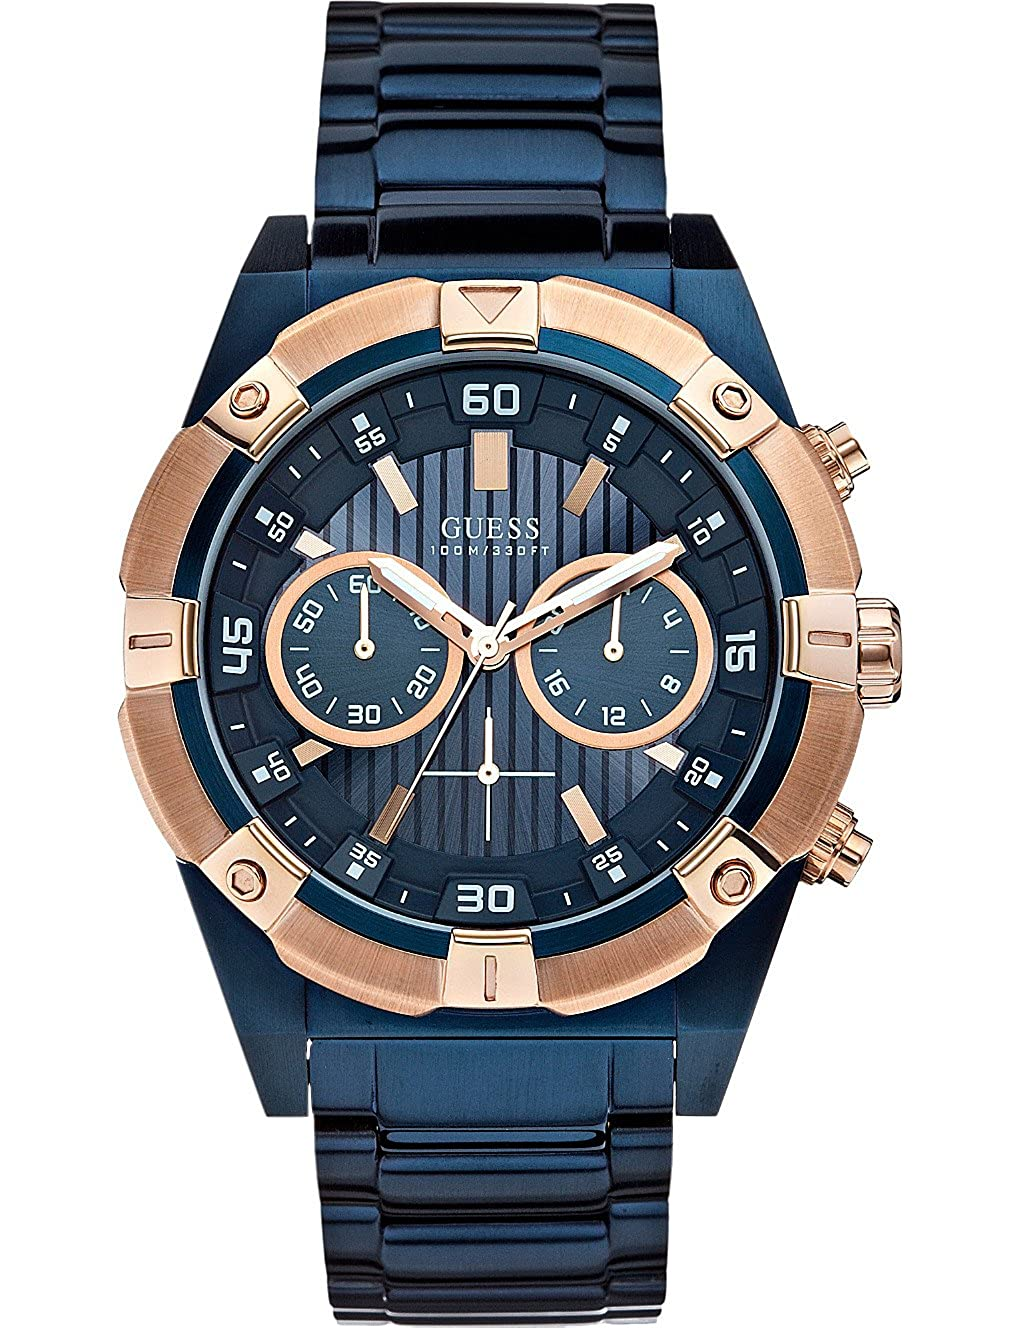 5dcbb1d29 Buy GUESS Blue Dial Analogue Watch for Men (W0377G4) Online at Low Prices  in India - Amazon.in